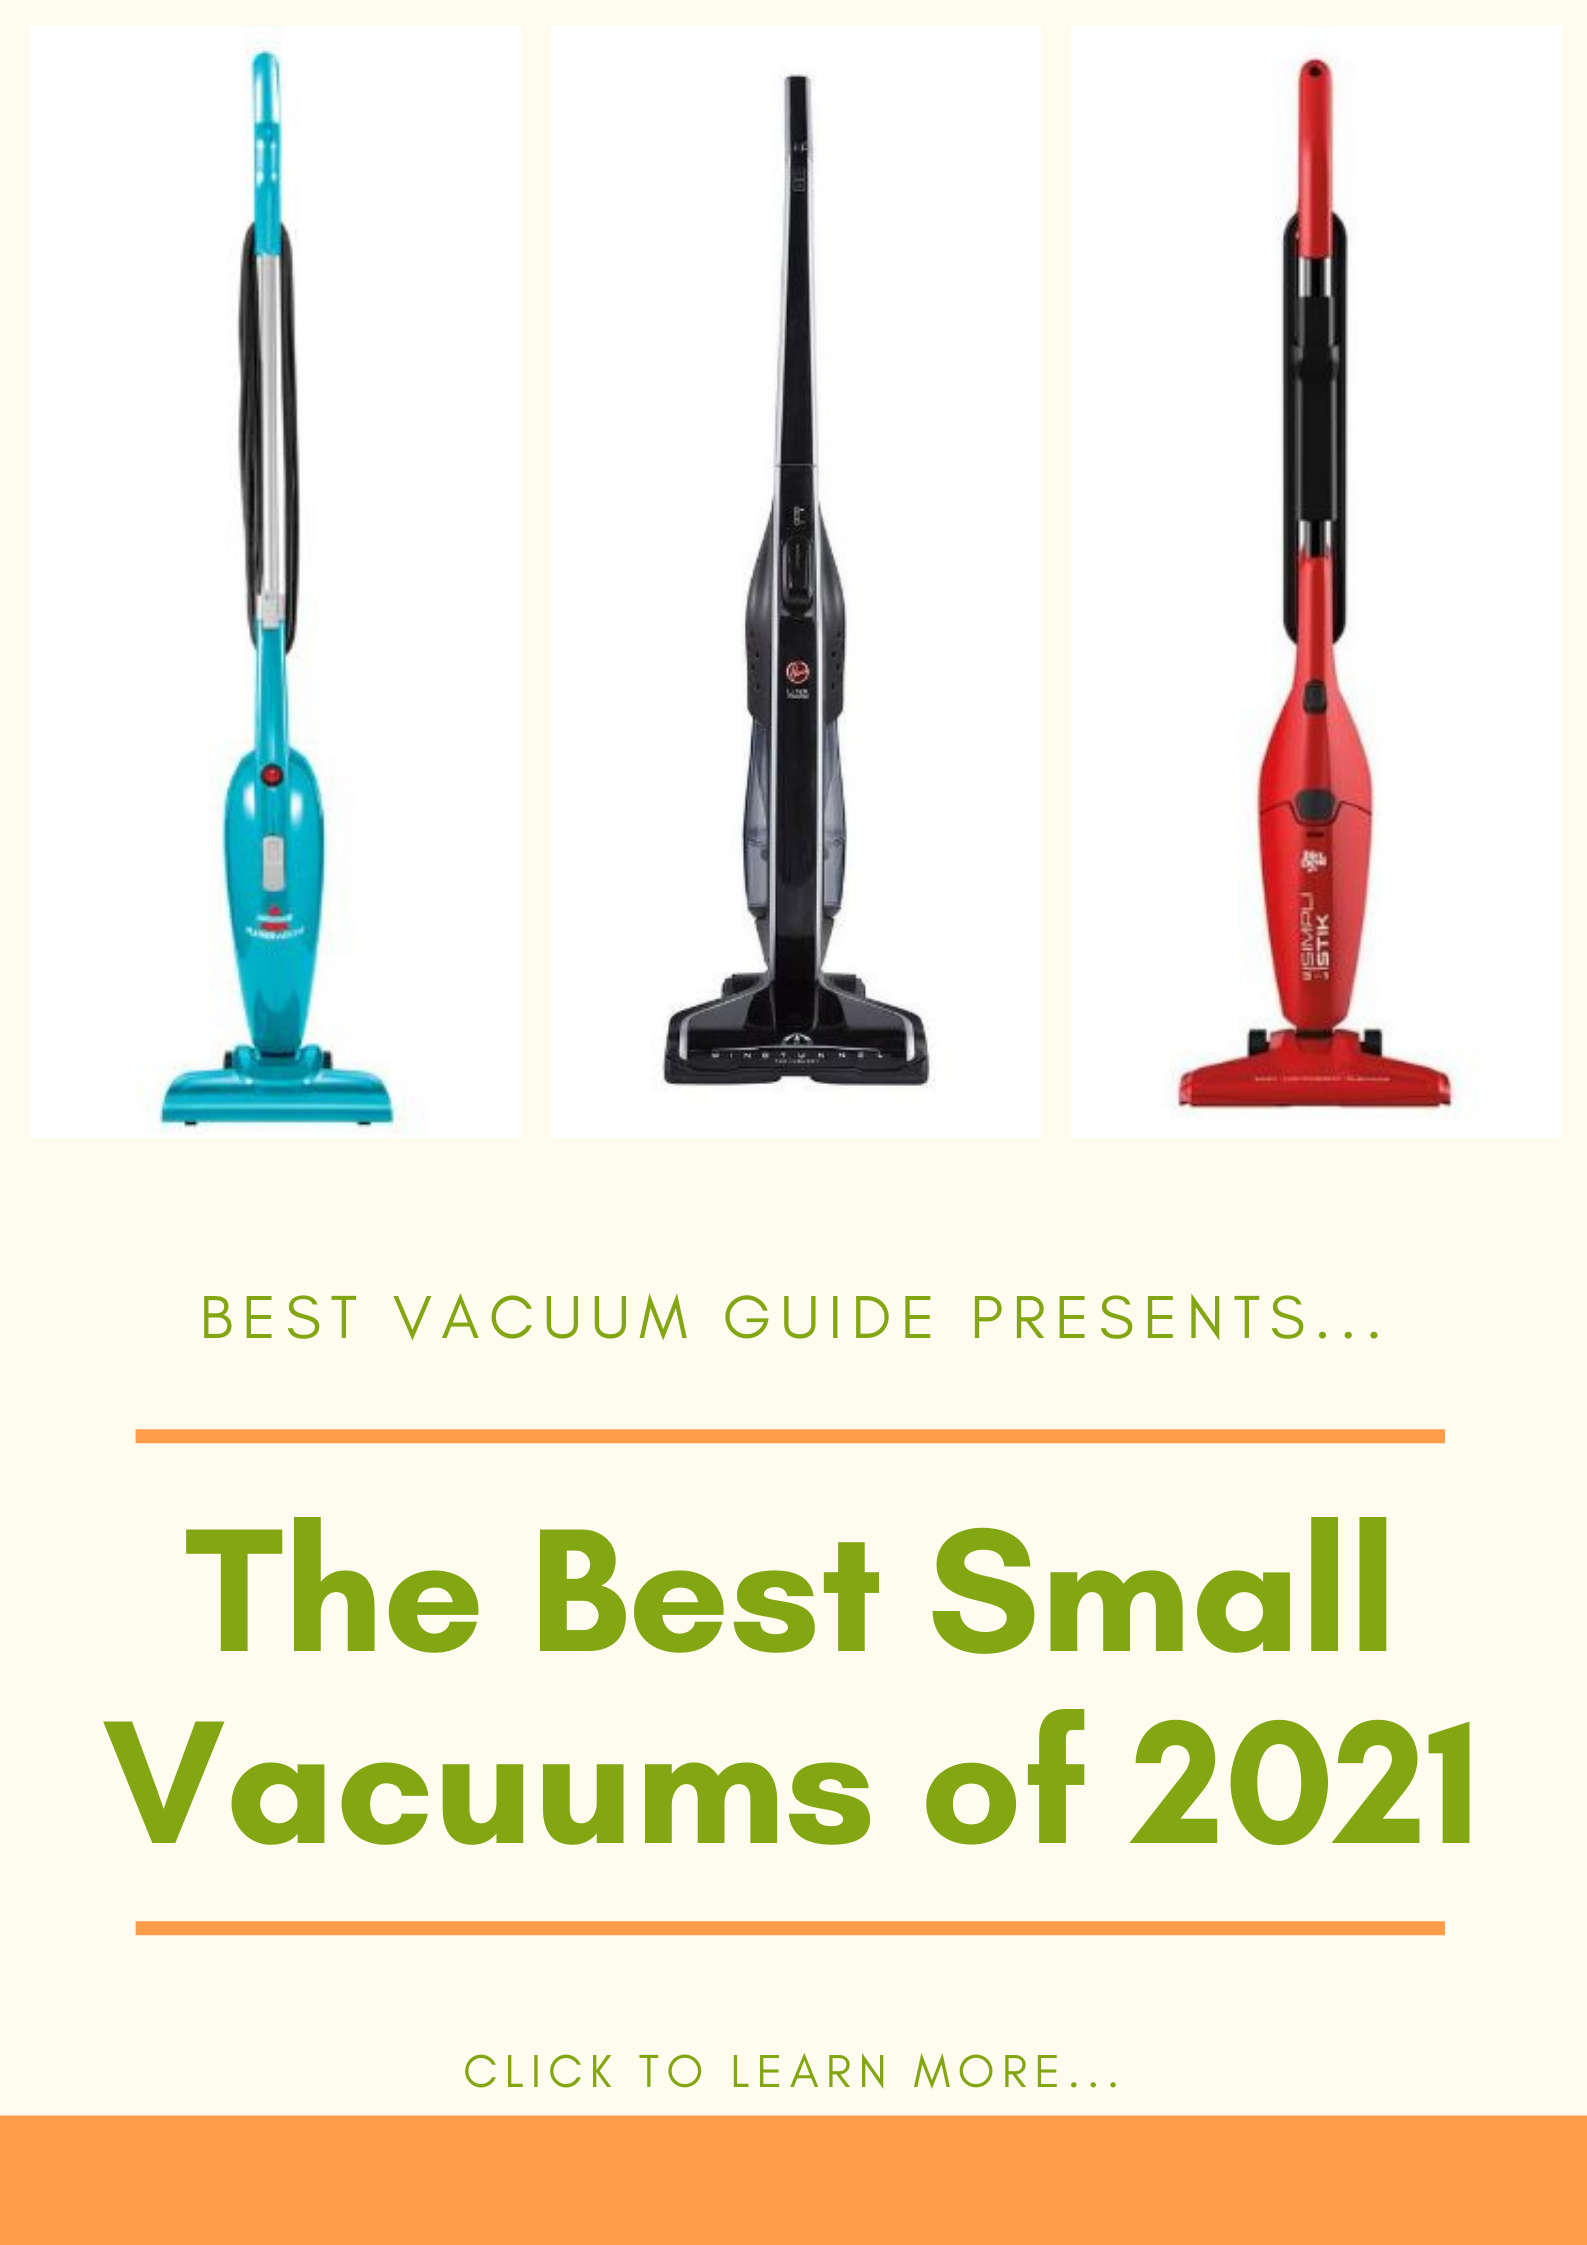 Best Small Vacuums 2021